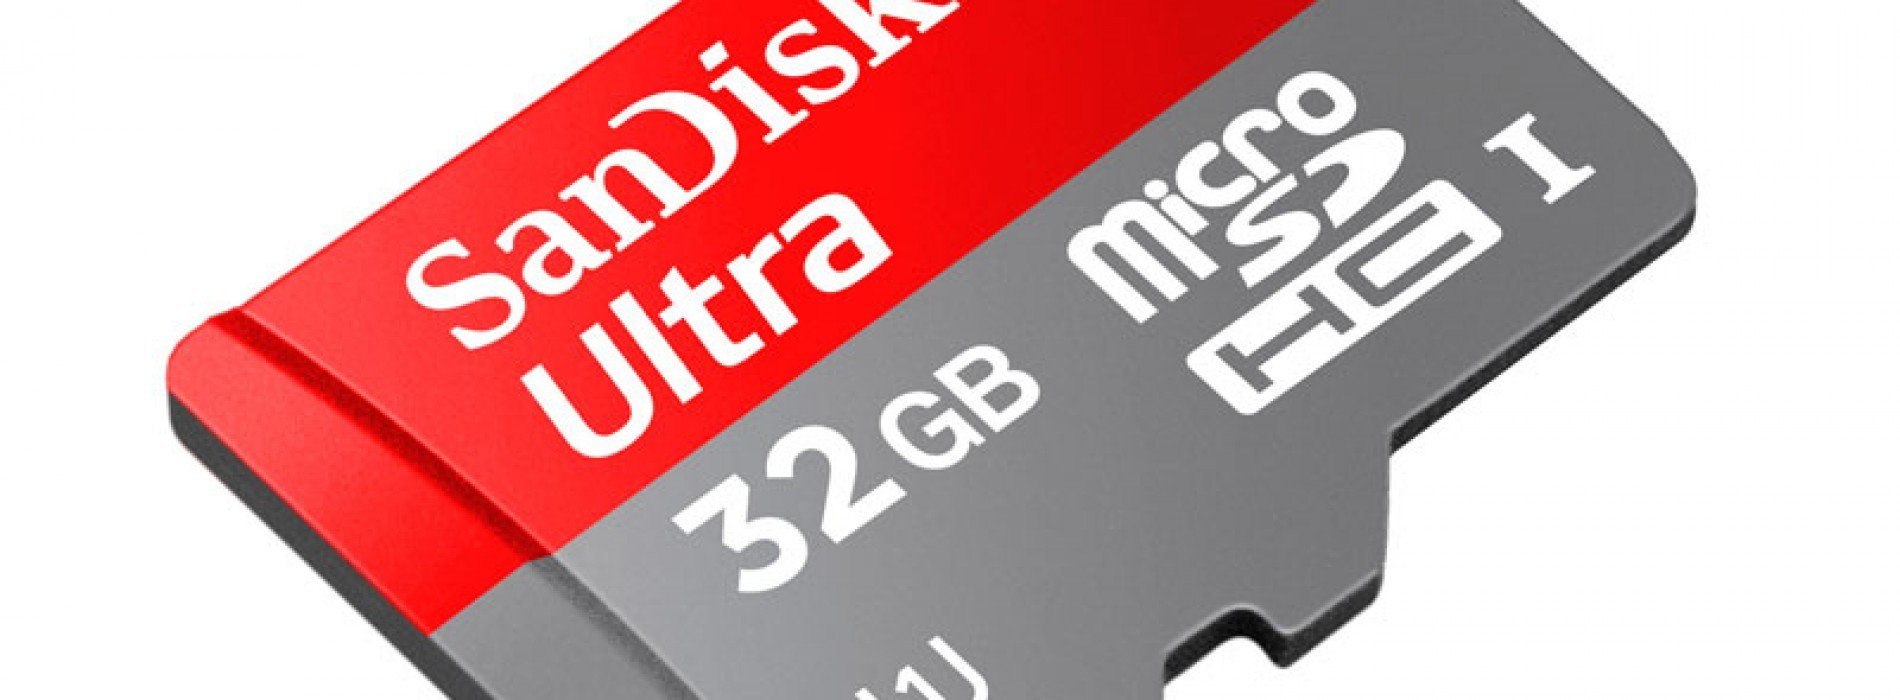 SanDisk Ultra 32 GB MicroSDHC memory card (66% OFF)